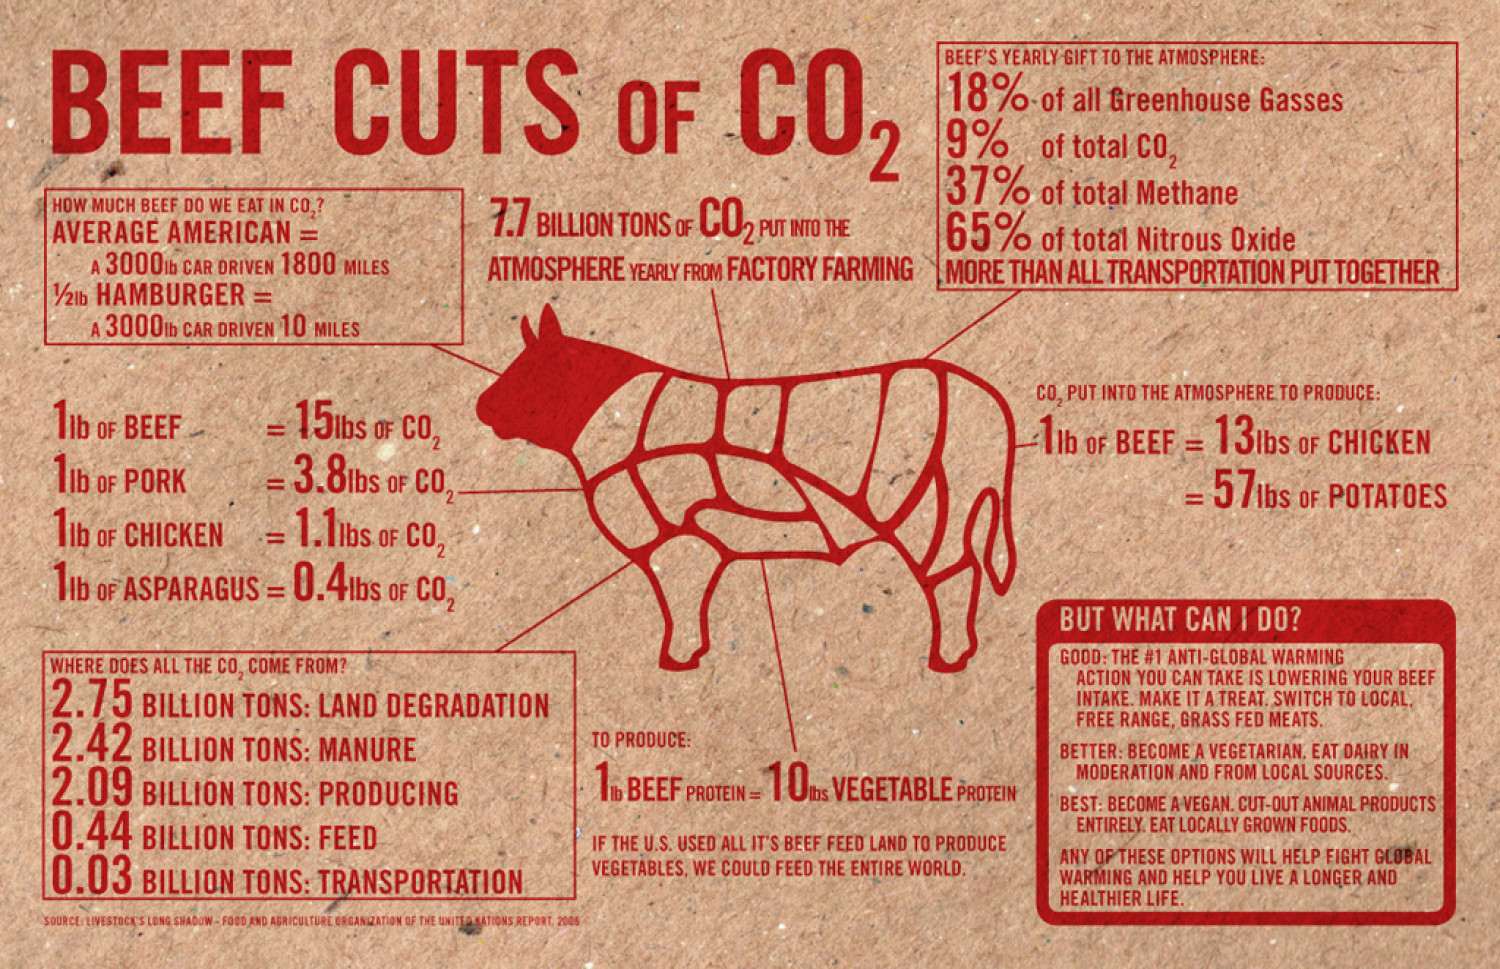 Beef Cuts of CO2 Infographic